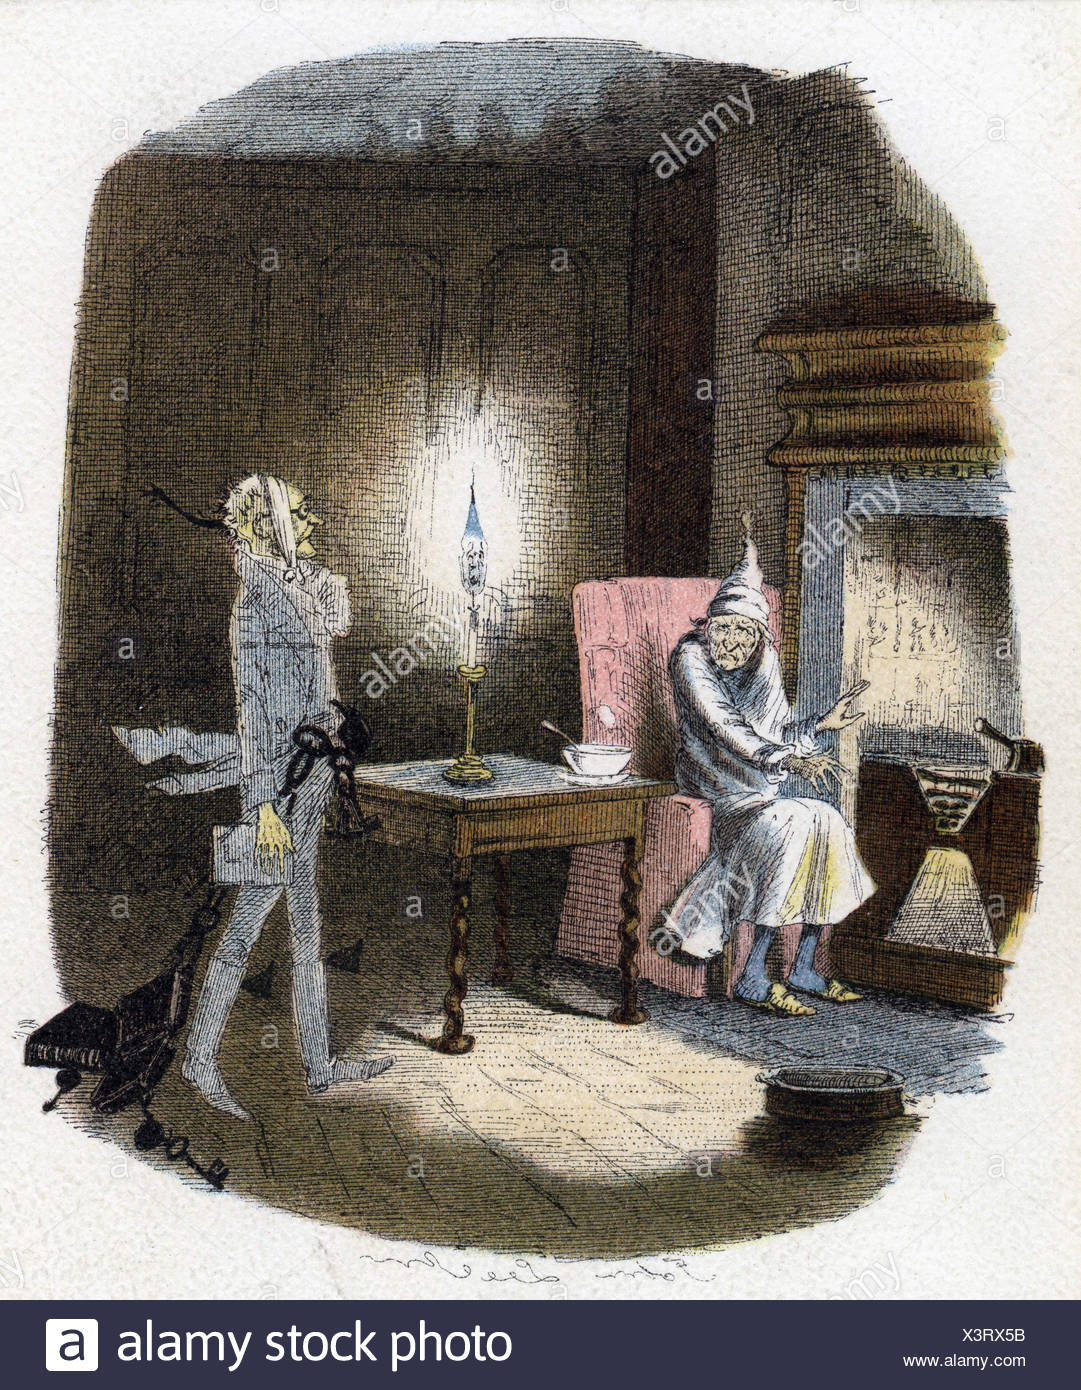 Dickens, Charles, 7.2.1812 - 9.7.1878, British author / writer, scene out of his novel 'Christmas Carol', Marley's ghost, illustration by John Leech, 1943, Artist's Copyright must also be cleared - Stock Image